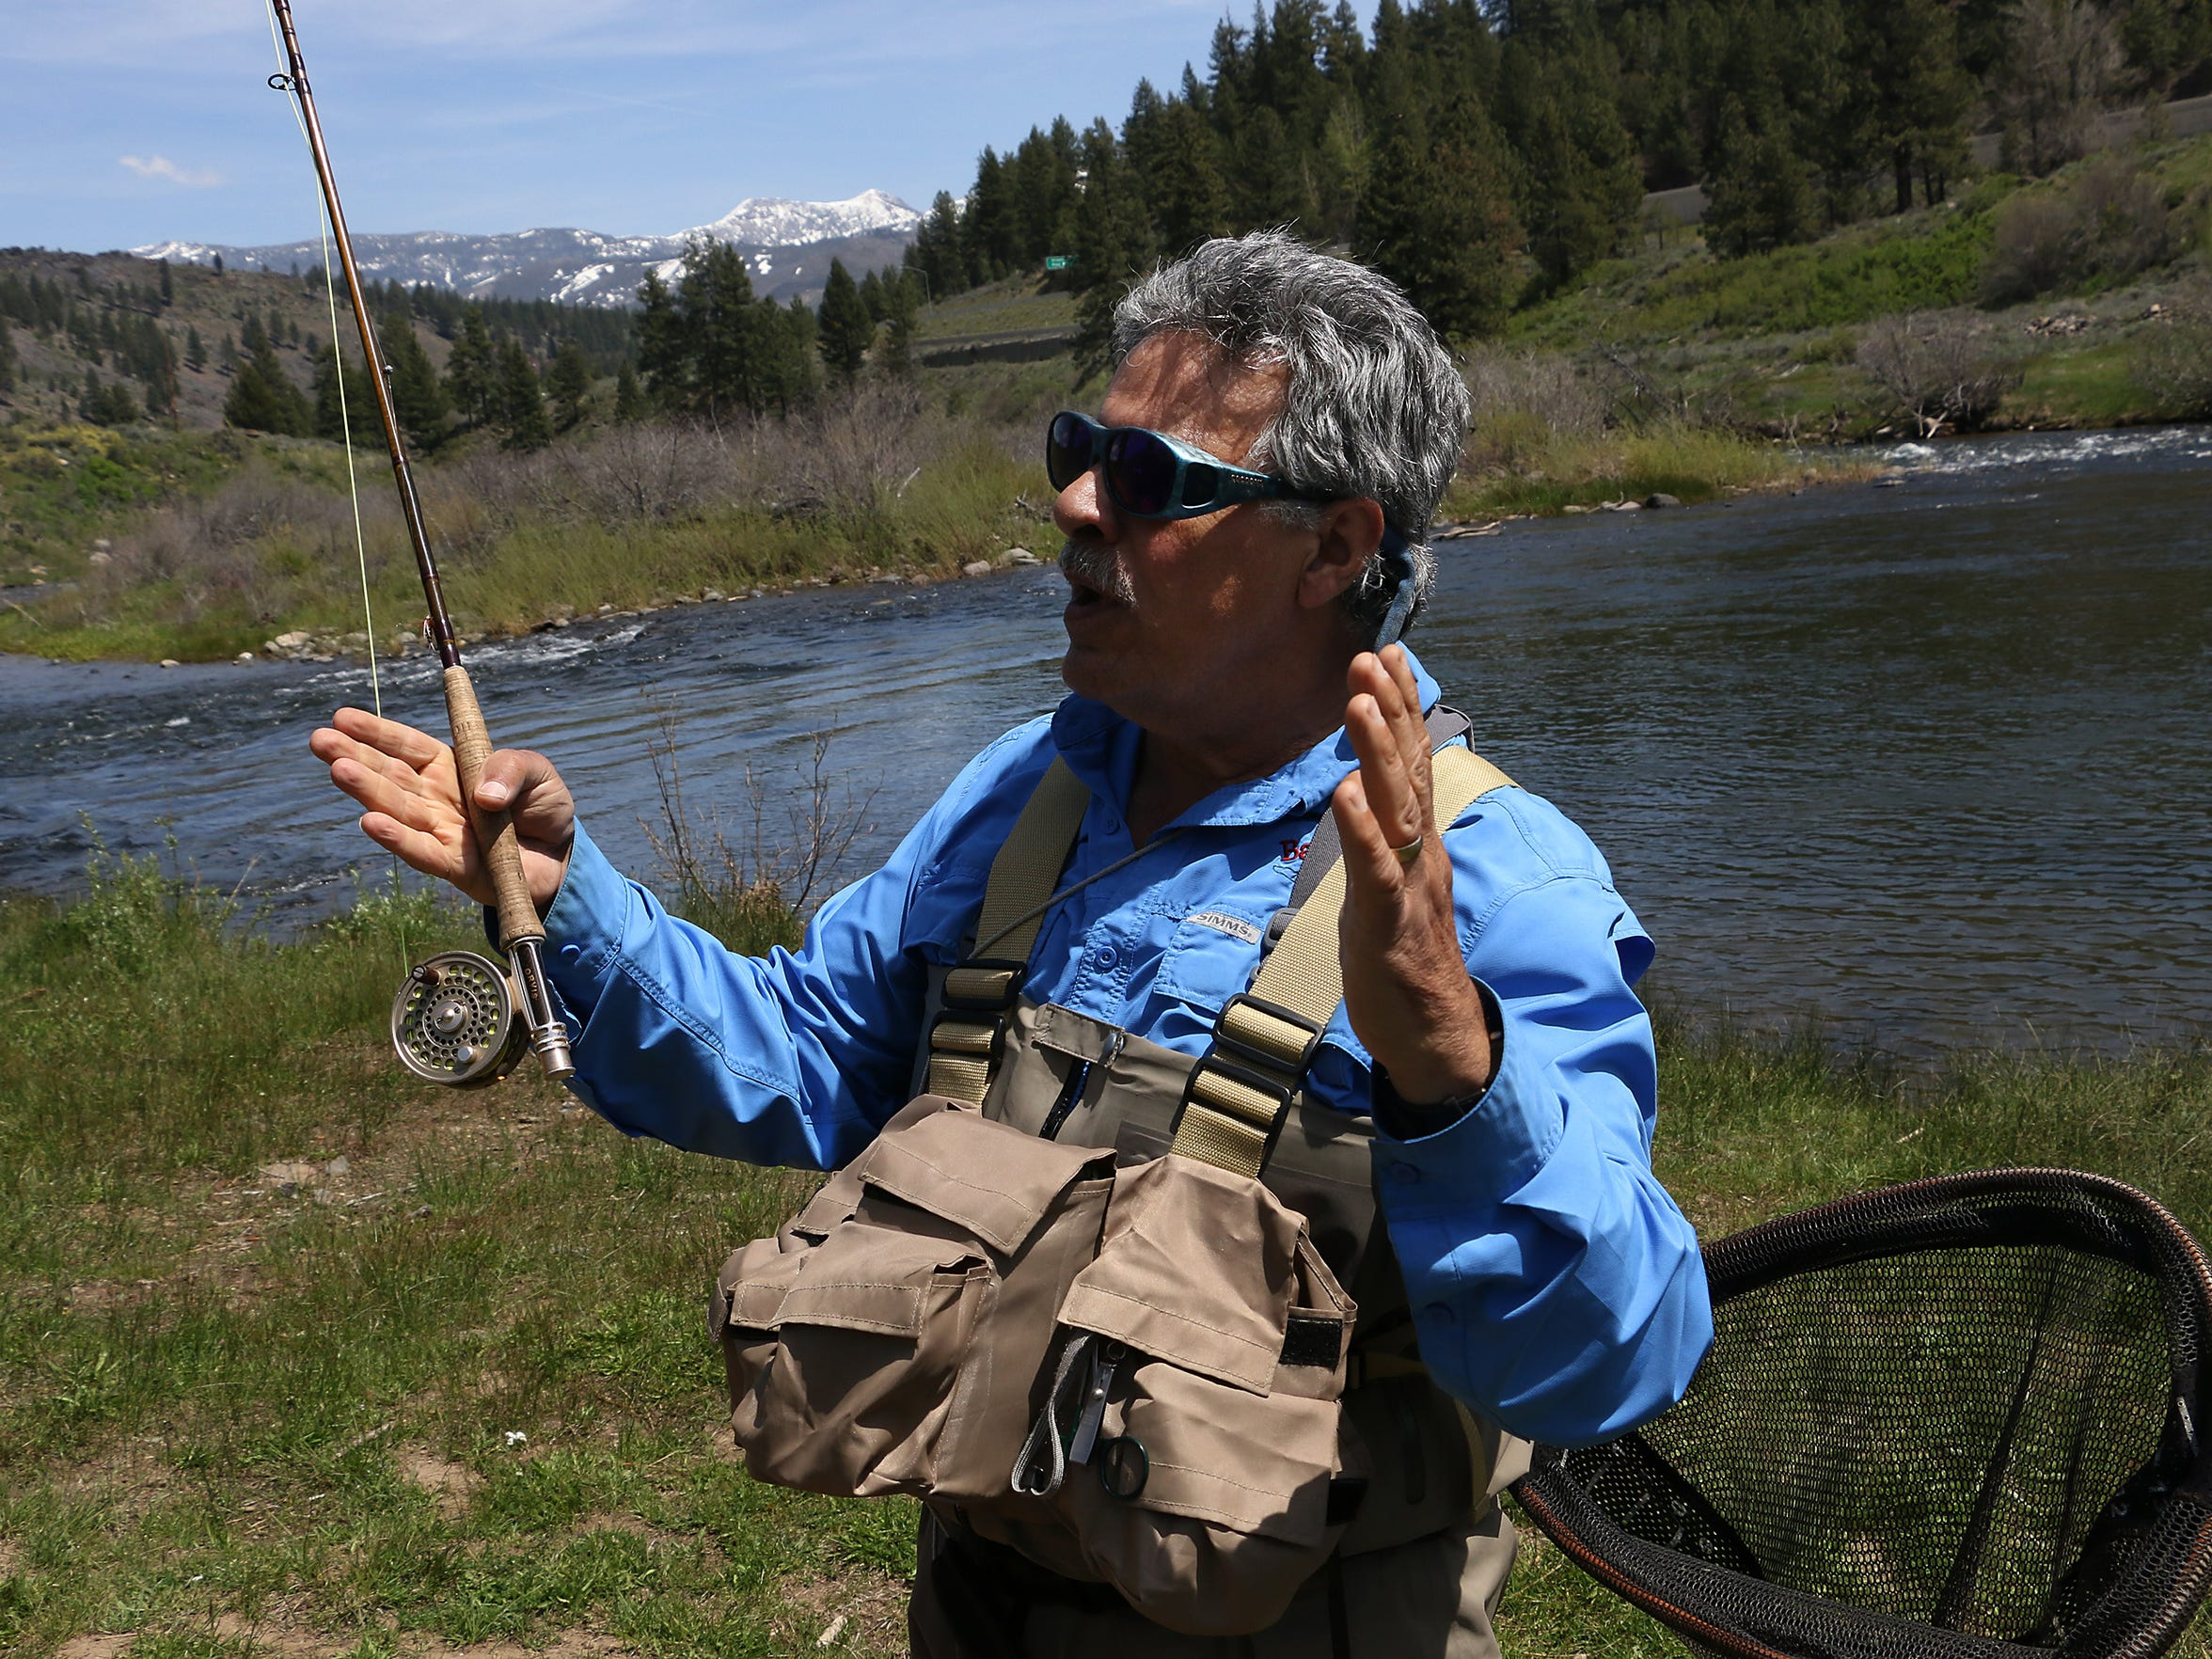 Fishing guide Frank Pisciotta has been fishing on the Truckee River since 1979. RGJ reporters Ben Spillman and Jason Bean paddle the Truckee River from Truckee to Pyramid Lake during May of 2016.